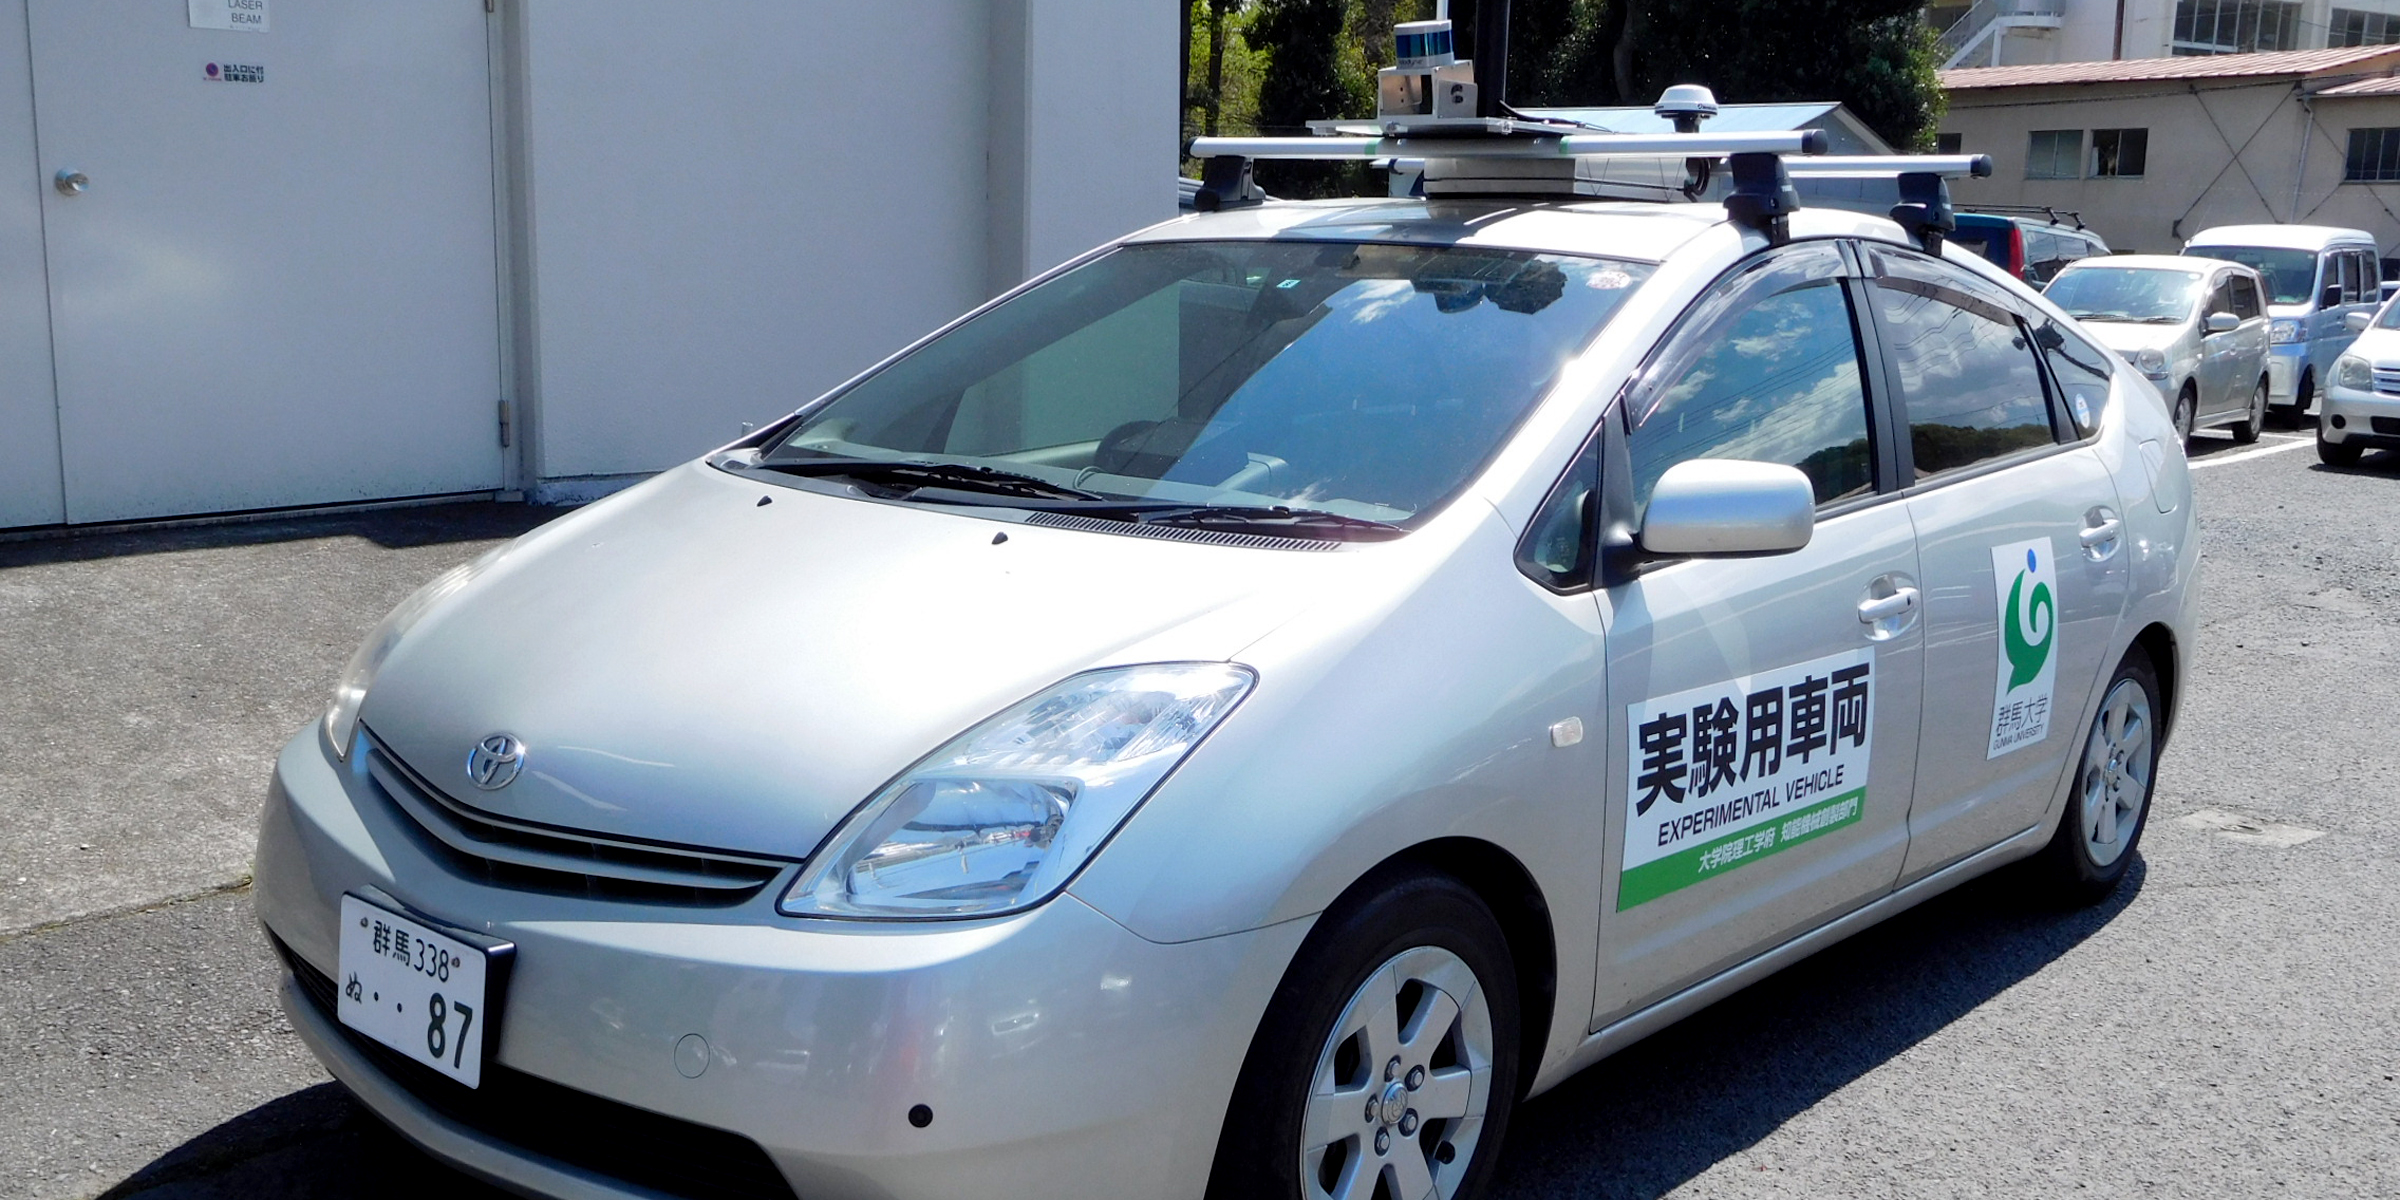 Gunma University to Research Fully Autonomous Driving Alongside Ryomo Systems